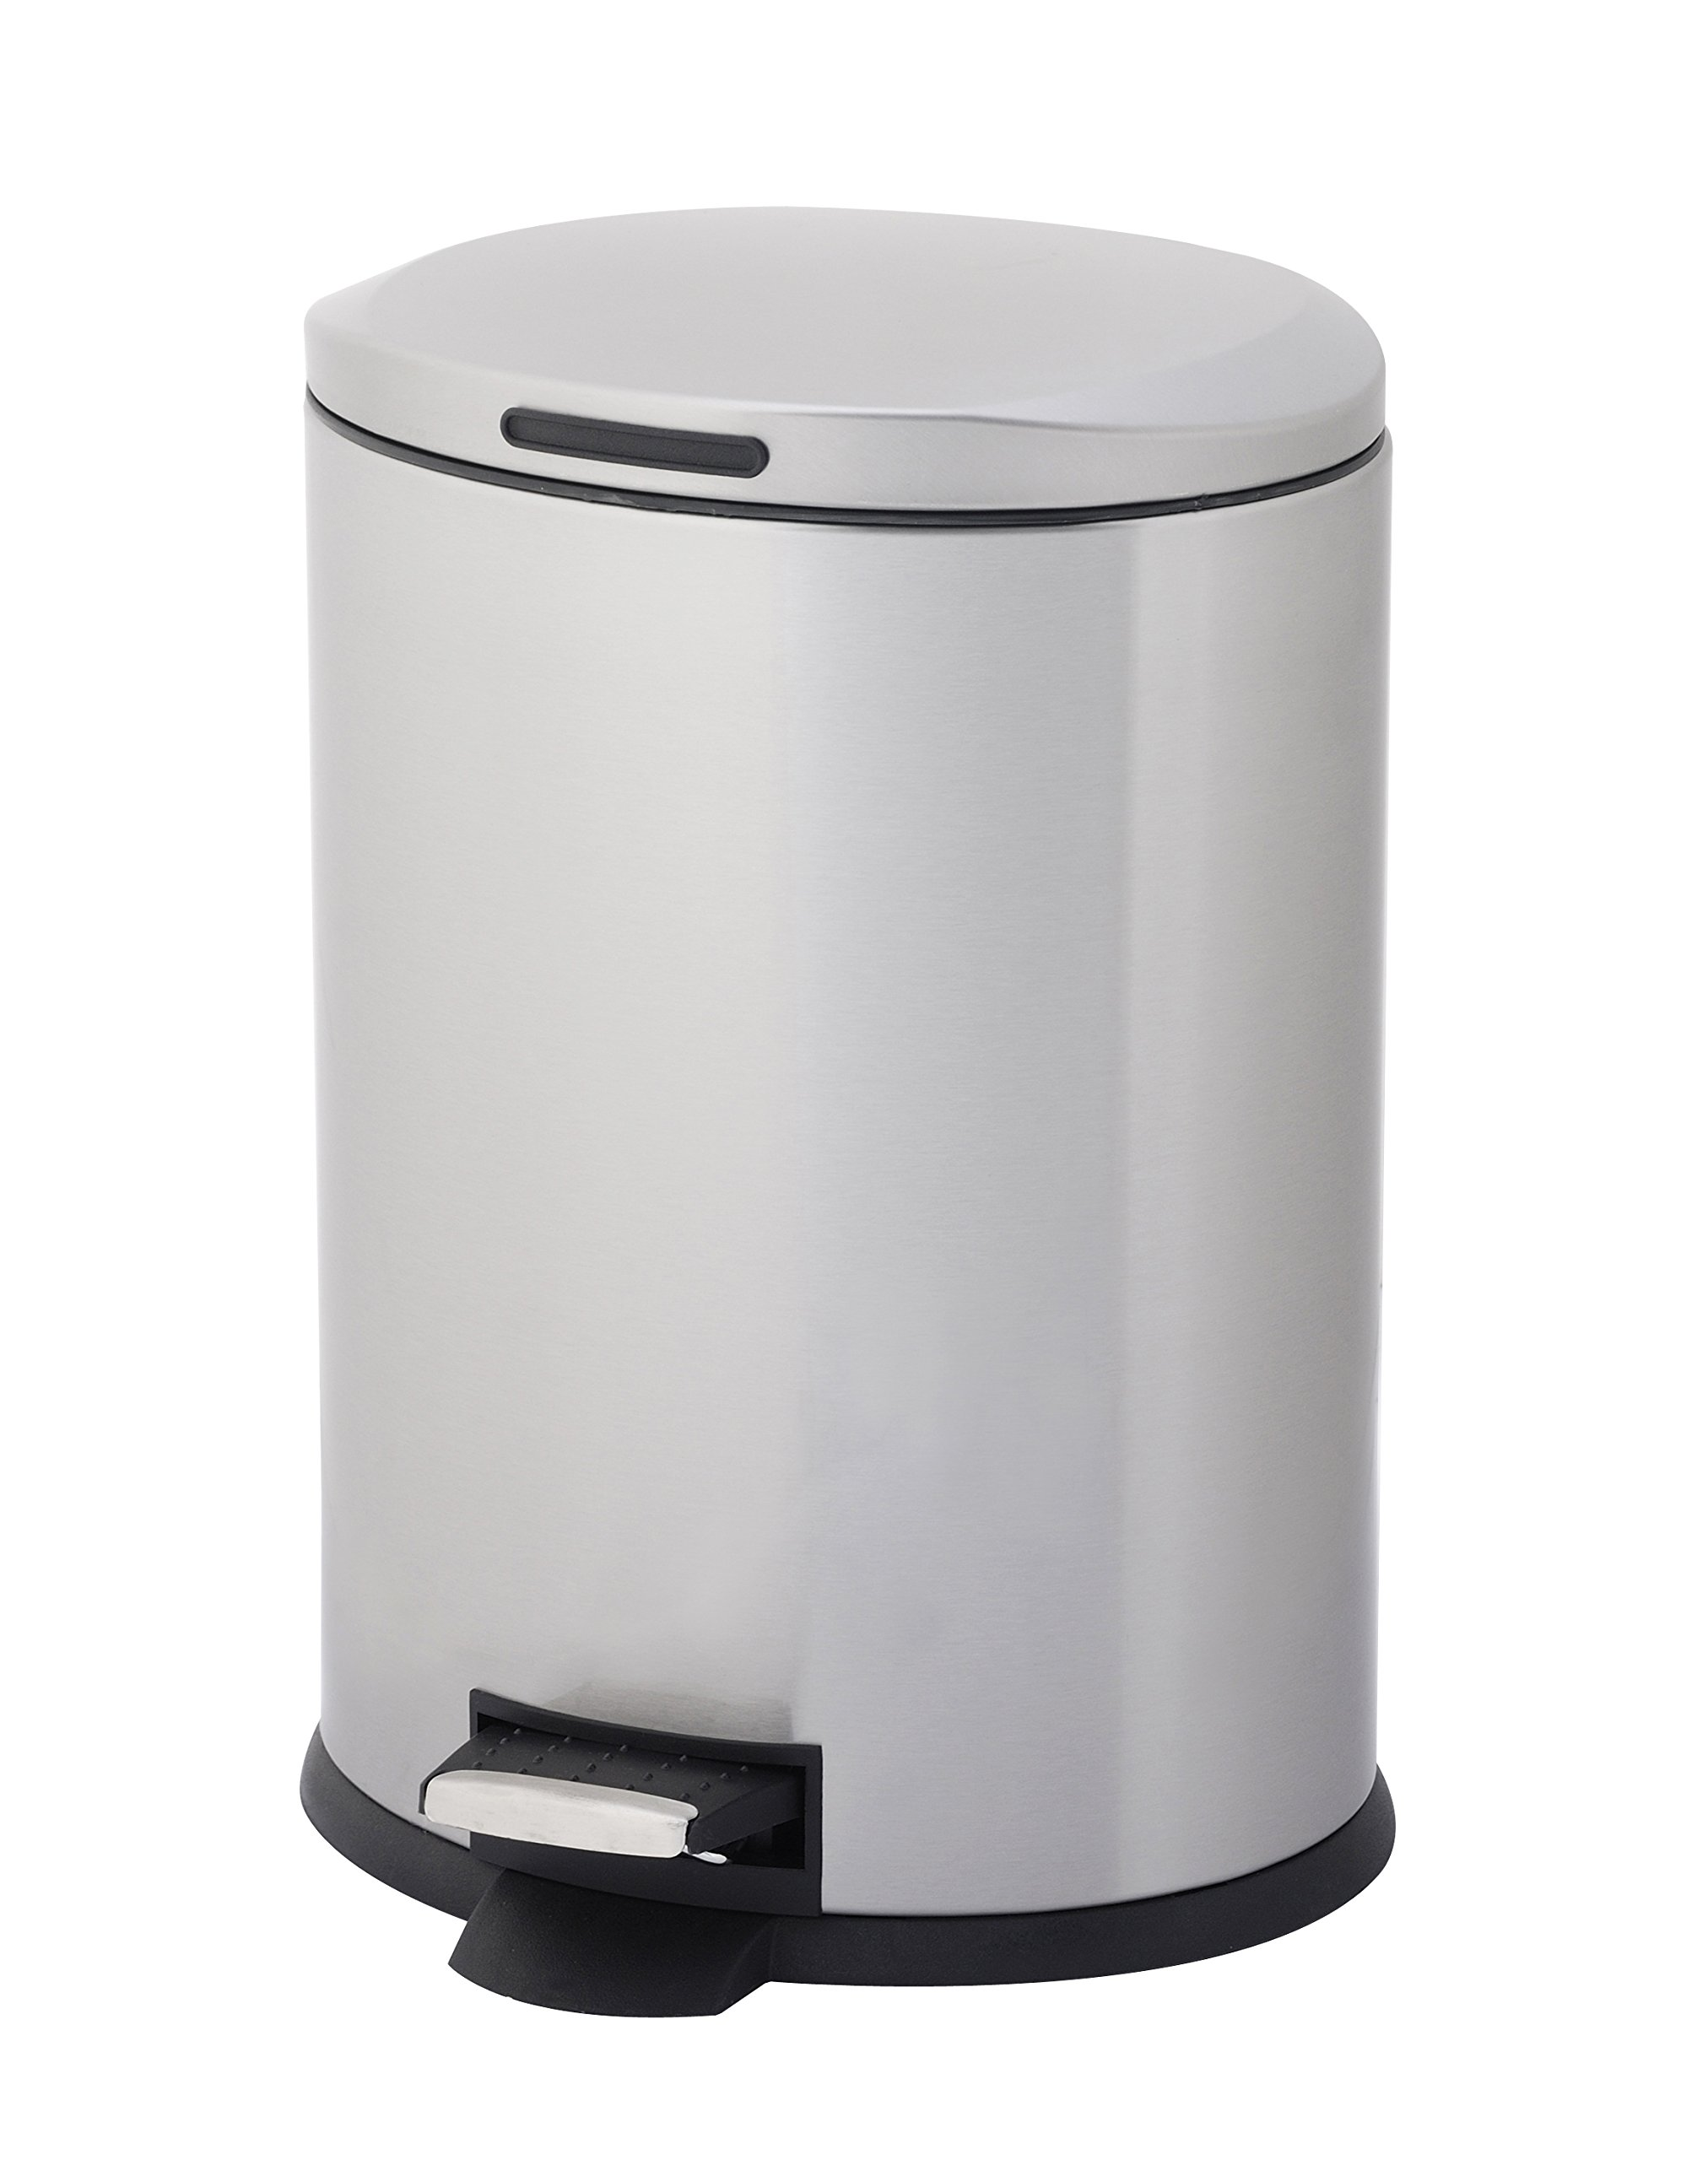 Home Zone Oval Step Trash Can - 3 Gallon / 12 Liter Stainless Steel Trash Bin (VA40913A)